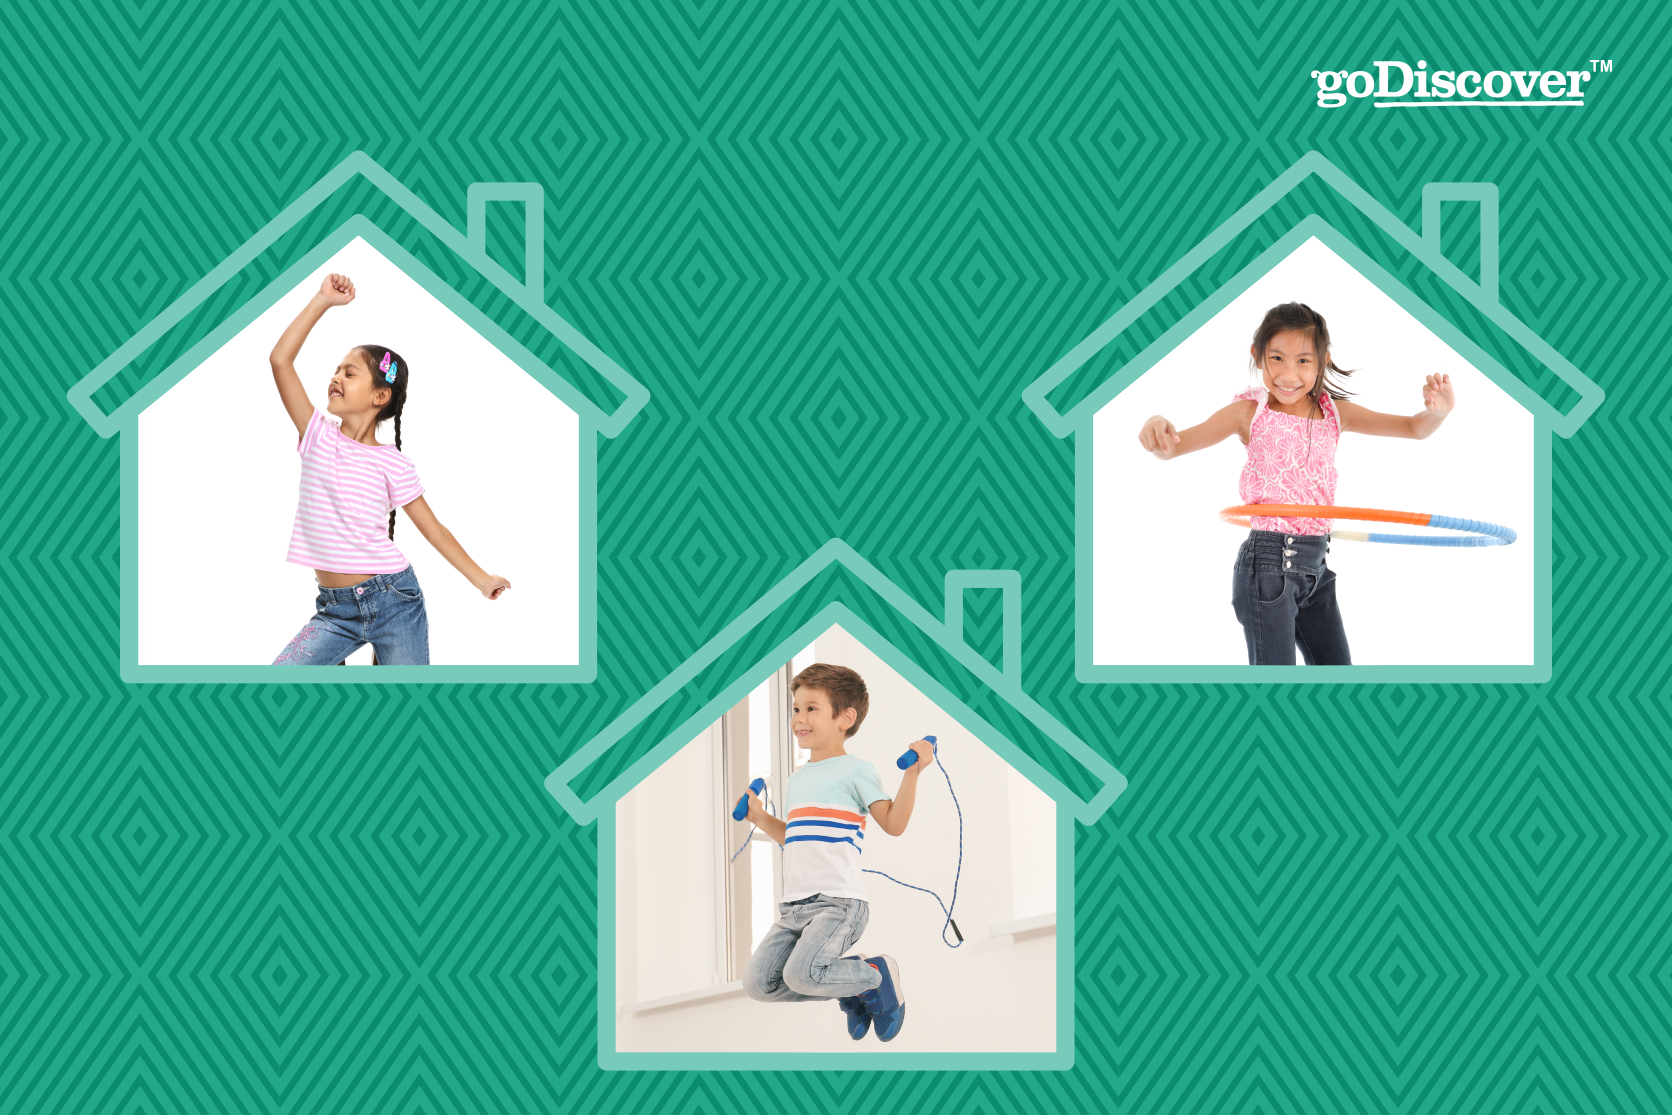 Three fun indoor physical activities for children